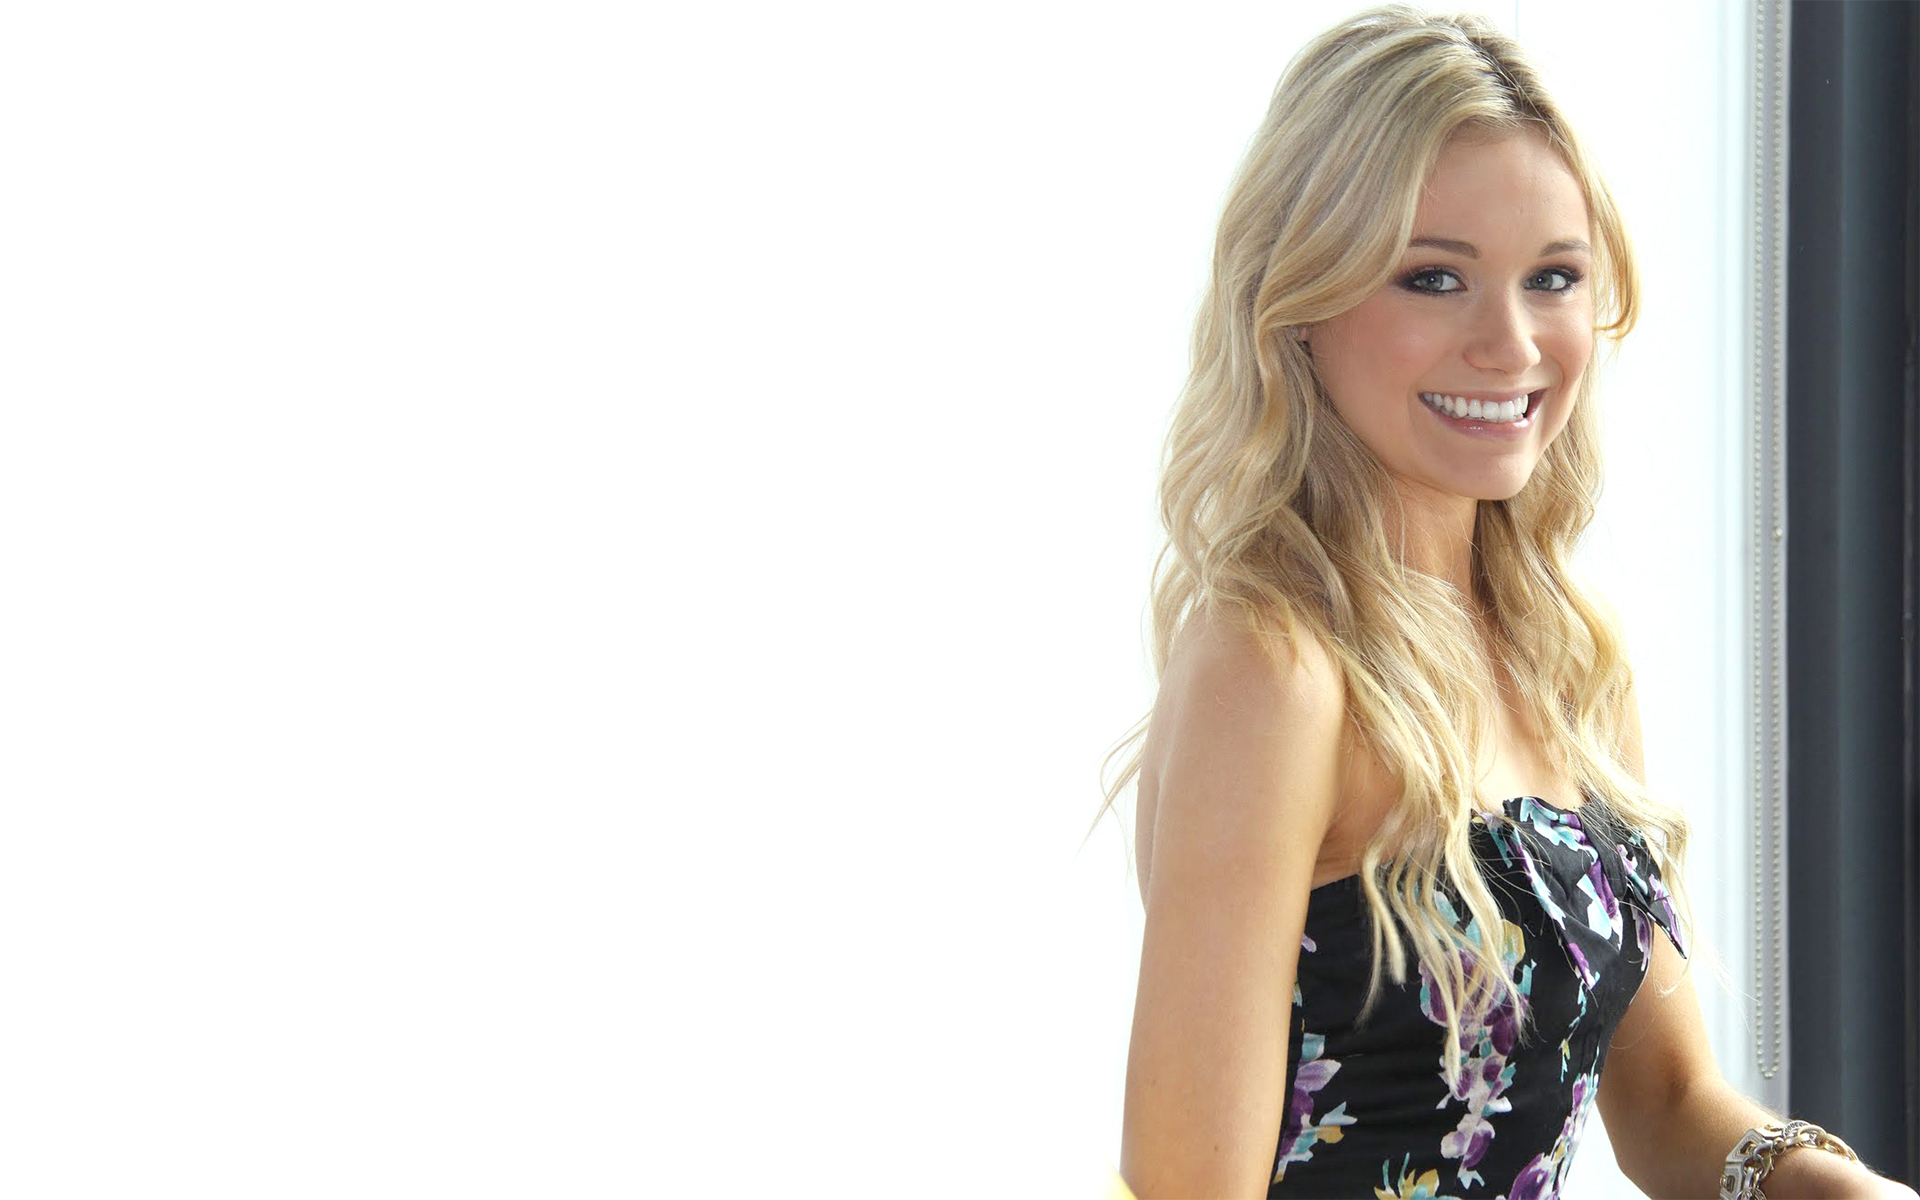 Cute Little Girl Hd Wallpapers 1080p Katrina Bowden Wallpapers High Quality Download Free